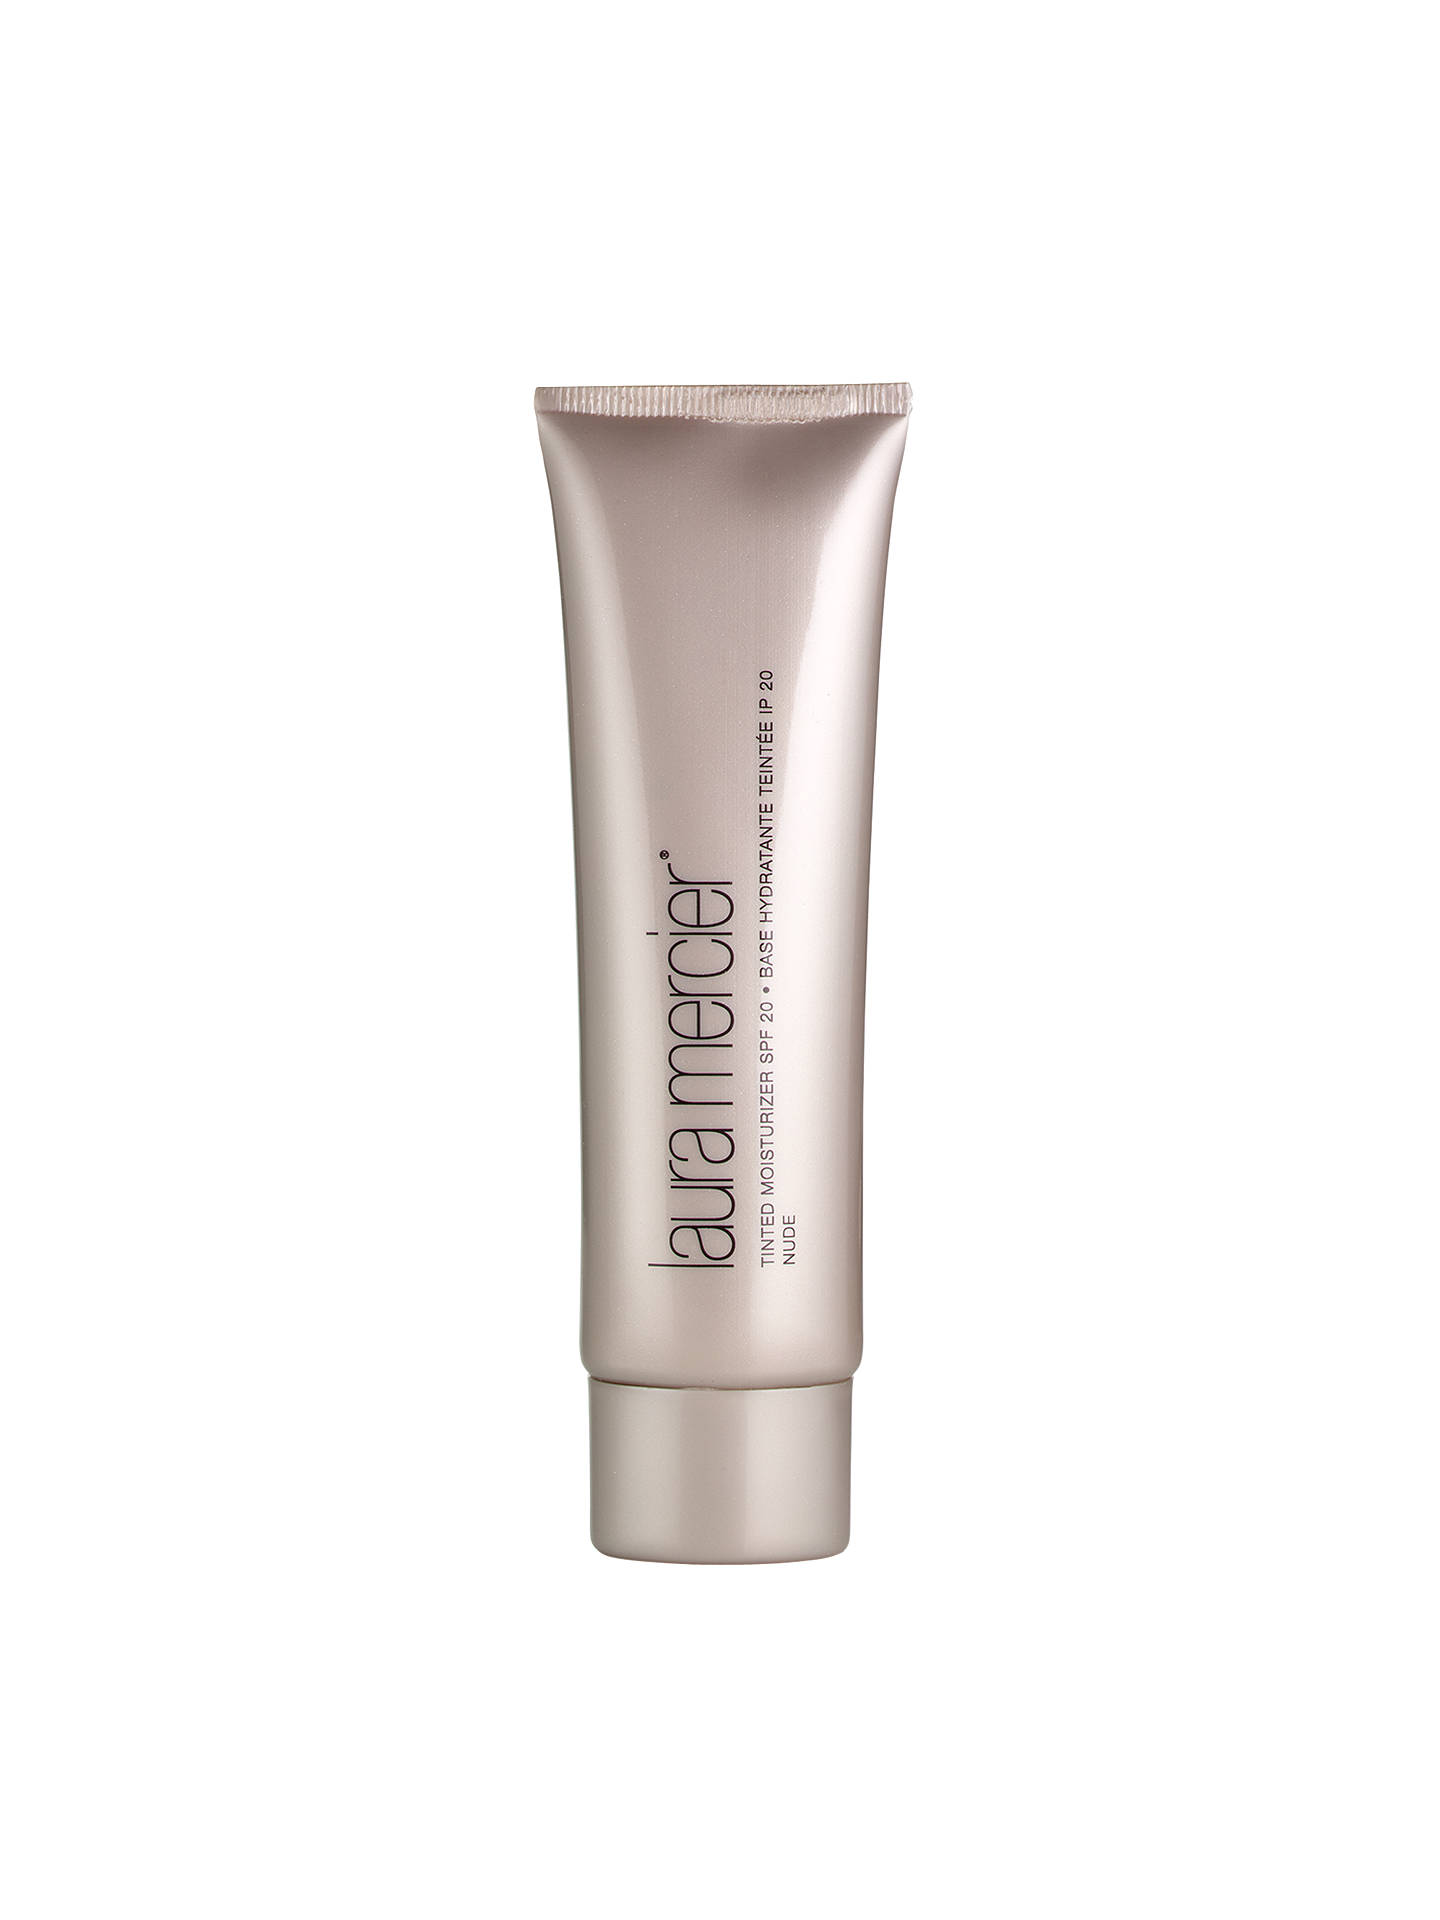 Buy Laura Mercier Tinted Moisturiser SPF20, Nude Online at johnlewis.com